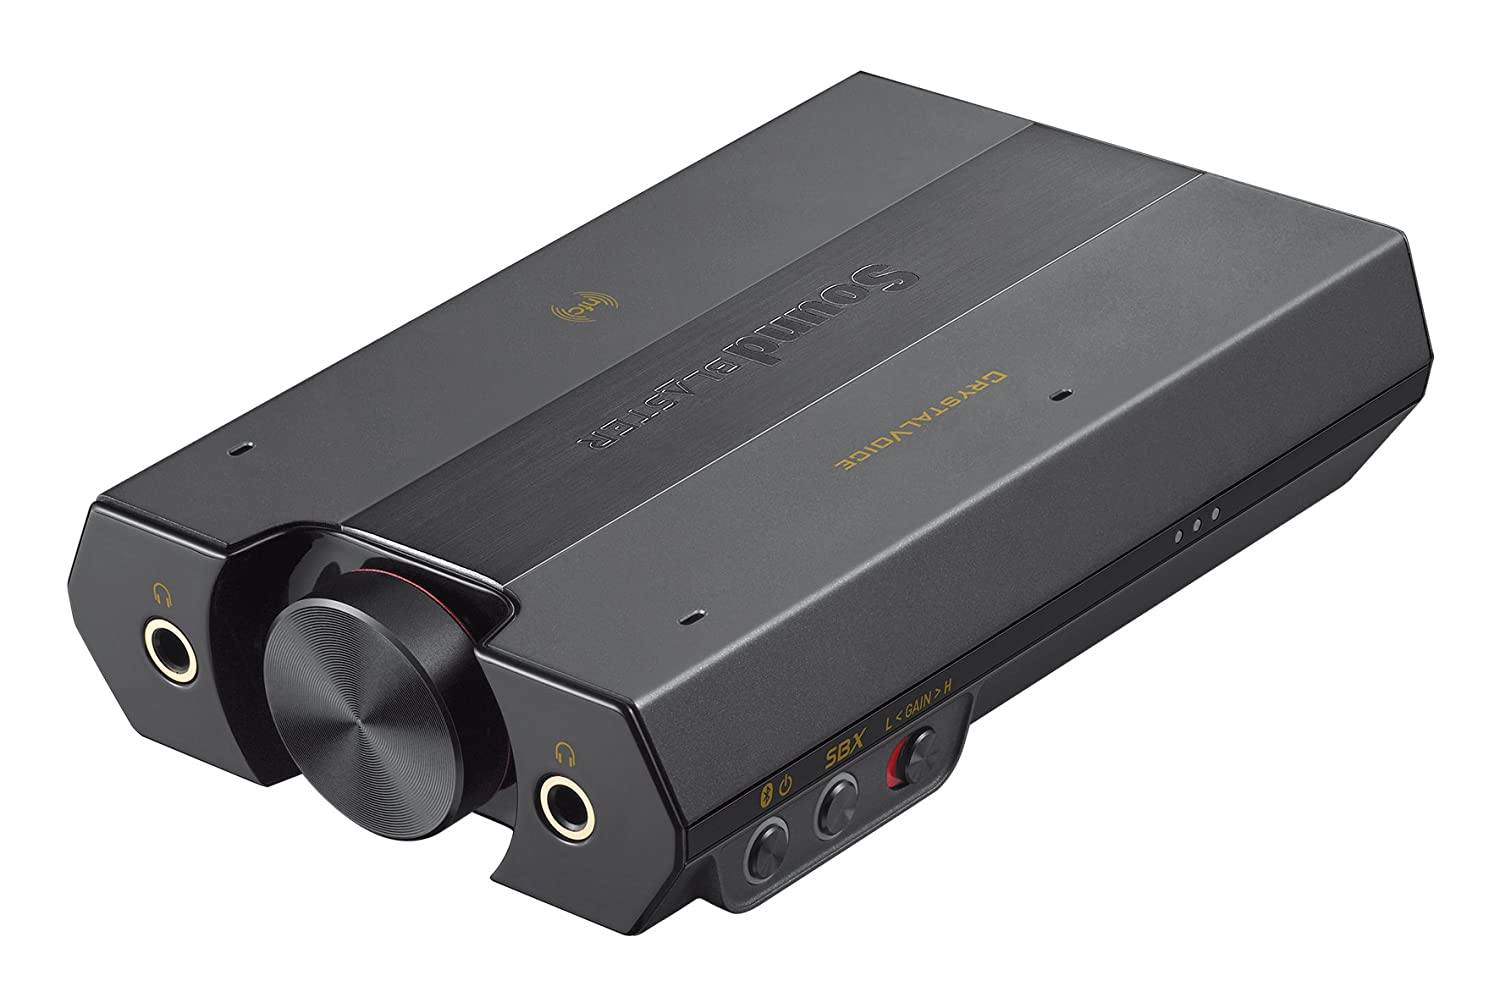 Creative Sound Blaster E5 High-Resolution USB DAC 600 ohm Headphone Amplifier